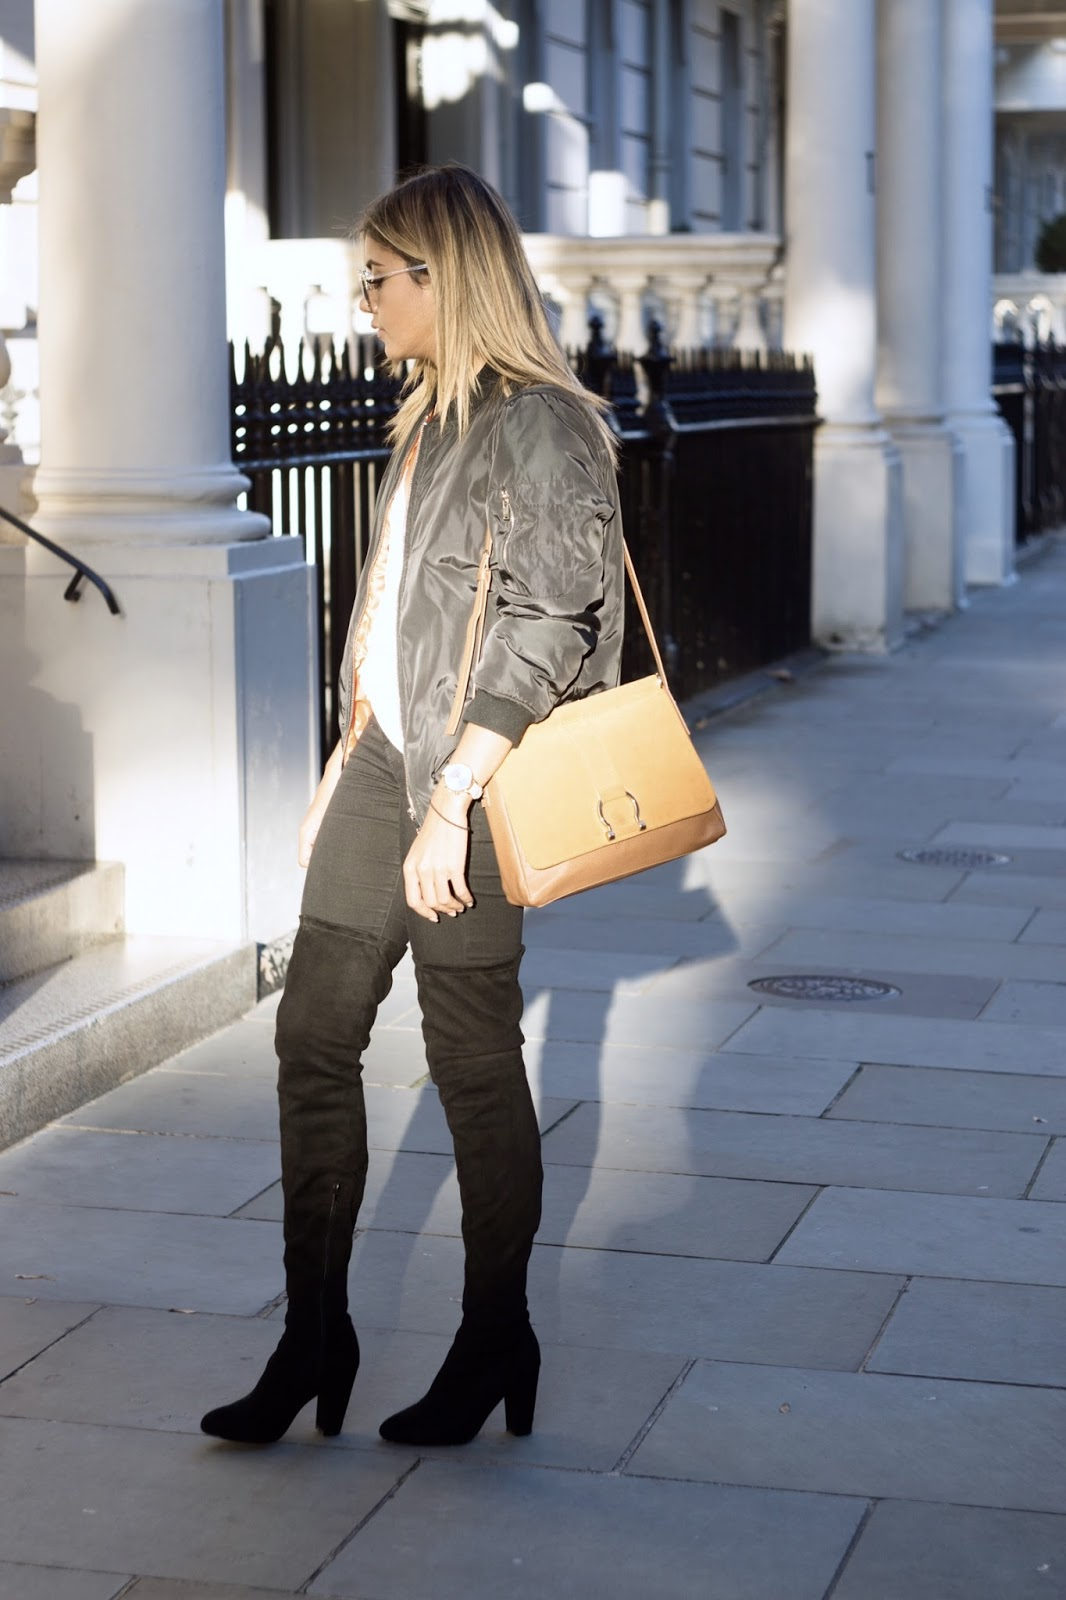 Liv in Fashion | Over the knee boots and bomber jacket